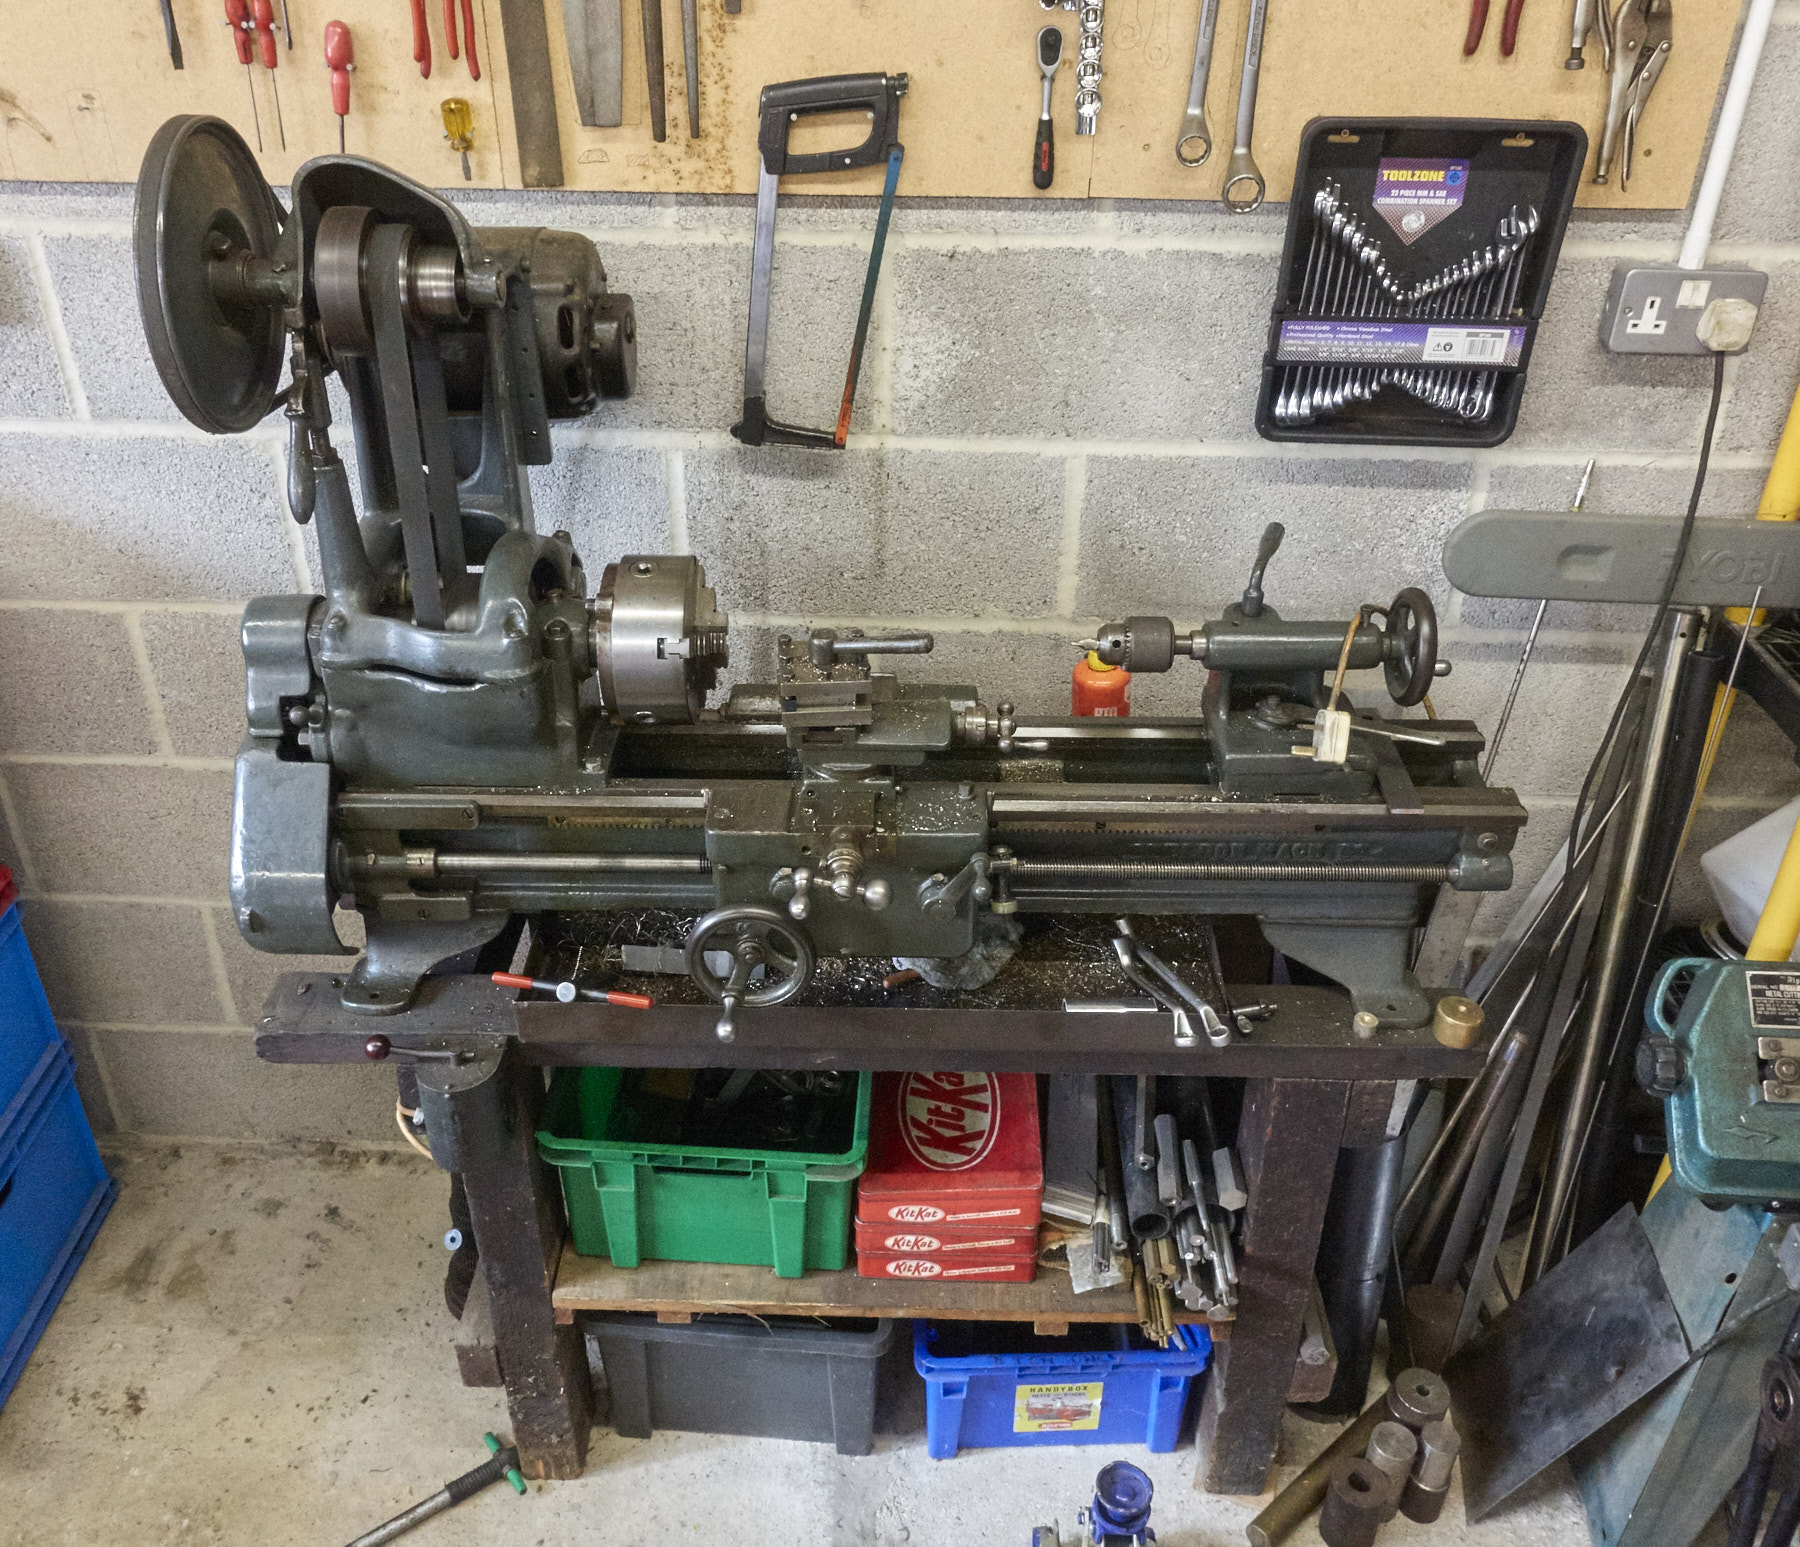 Mini Lathe - Page 2 - Ariel Owners MotorCycle Club